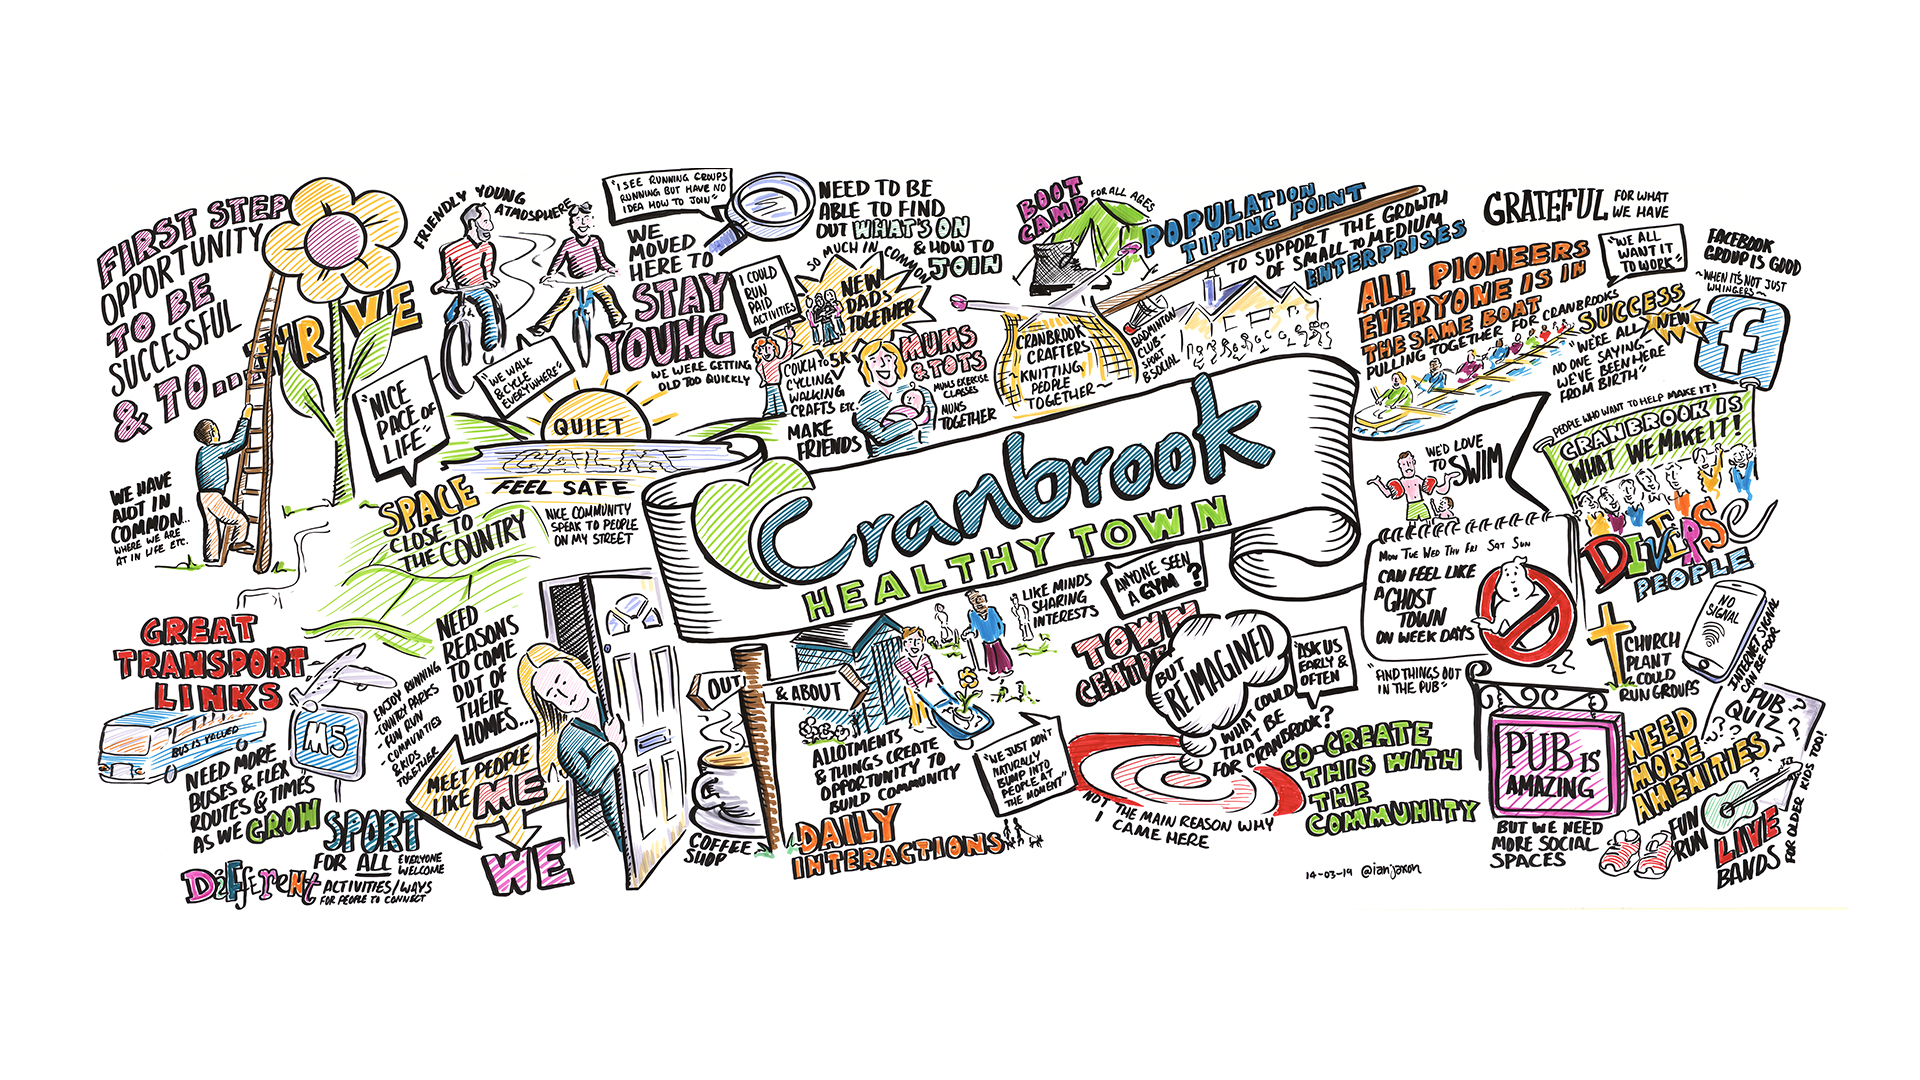 Full Community Engagement Graphic Scribe